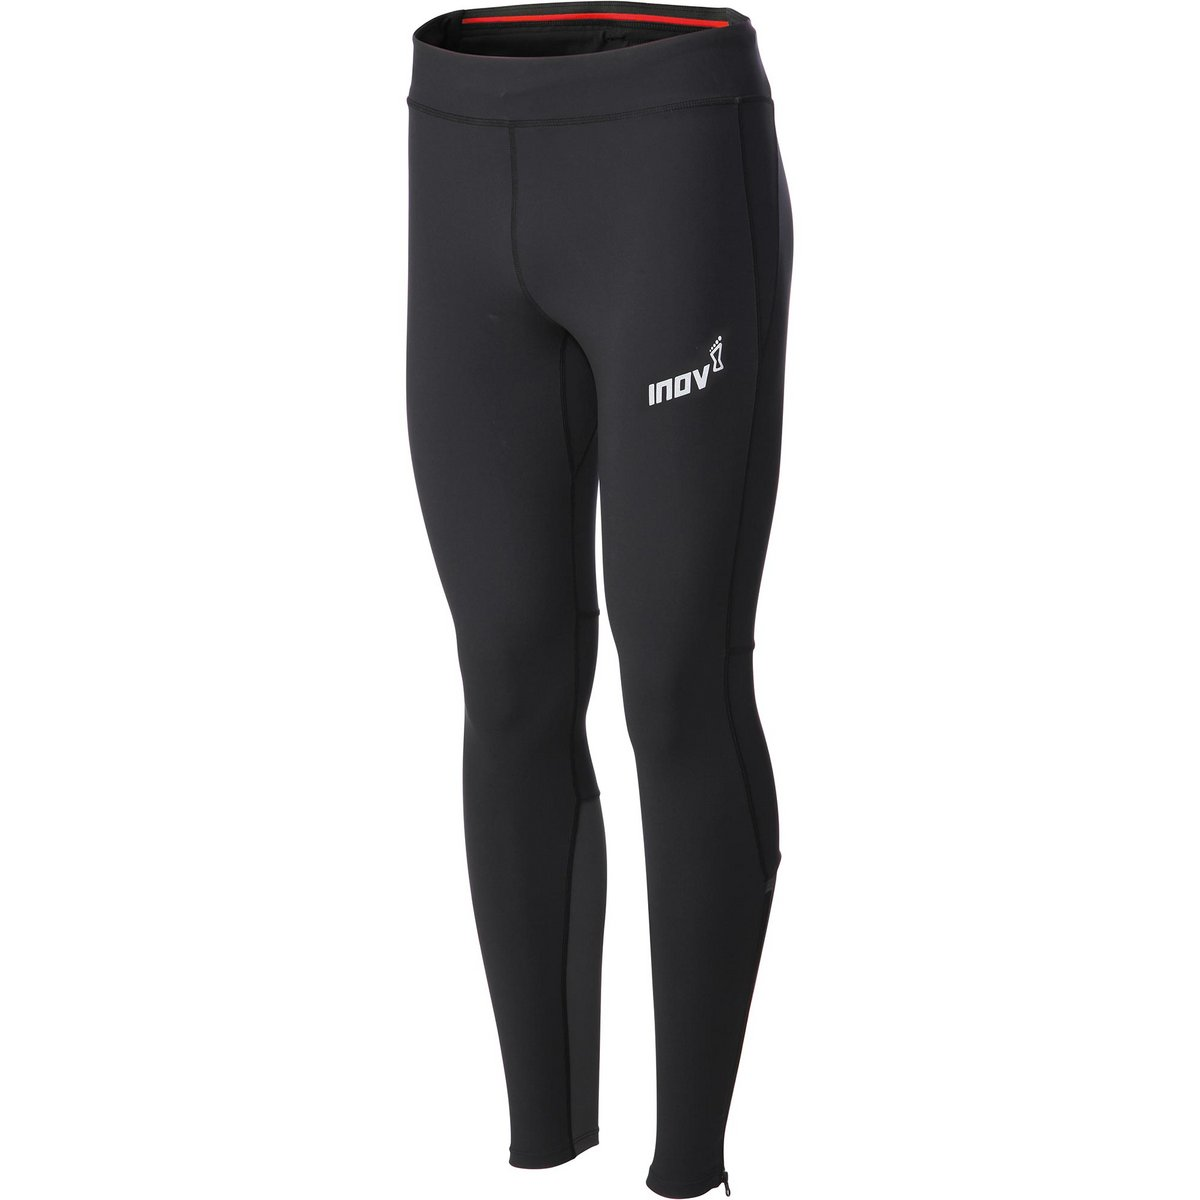 Inov-8 Men's Race Elite Tights 0